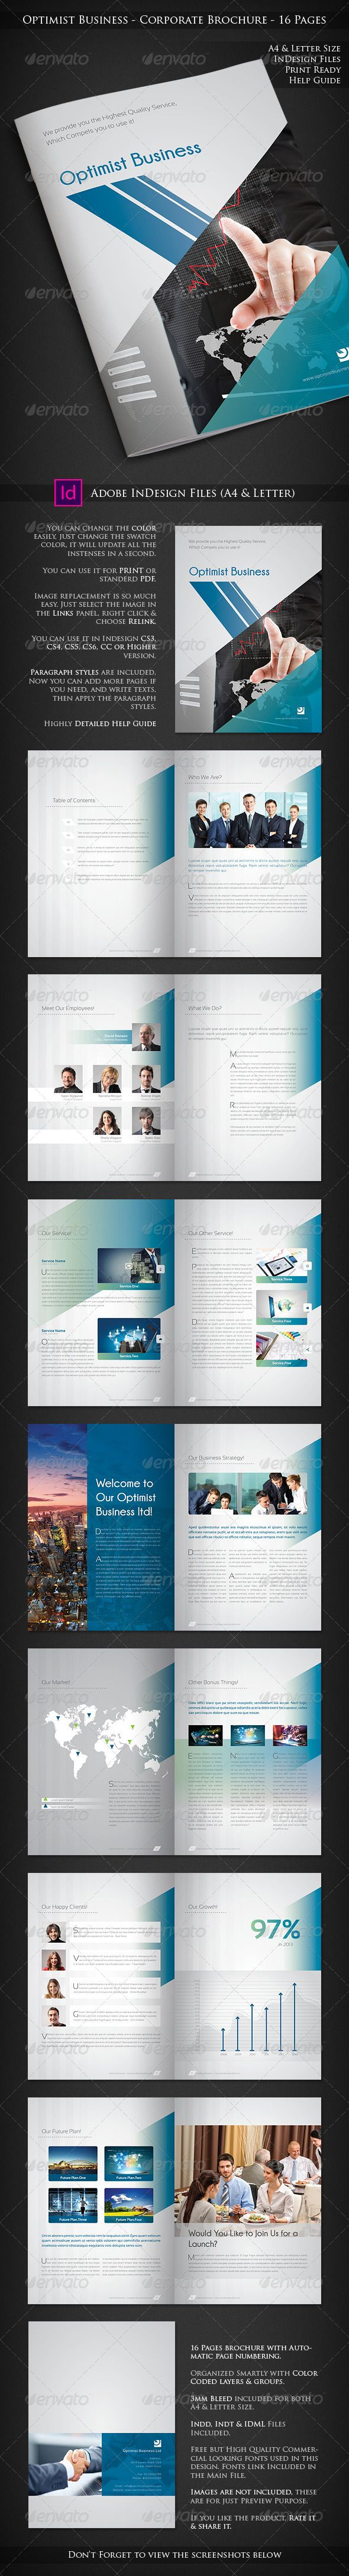 Optimist Business - Corporate Brochure ... abstract, abstract brochure, blue, booklet, brochure, business, business brochure, colorful brochure, company, company brochure, company profile, corporate, cyan, design, infographic, marketing, marketing brochure, profile, red, sales, sales graph, sexy, shape, stylish